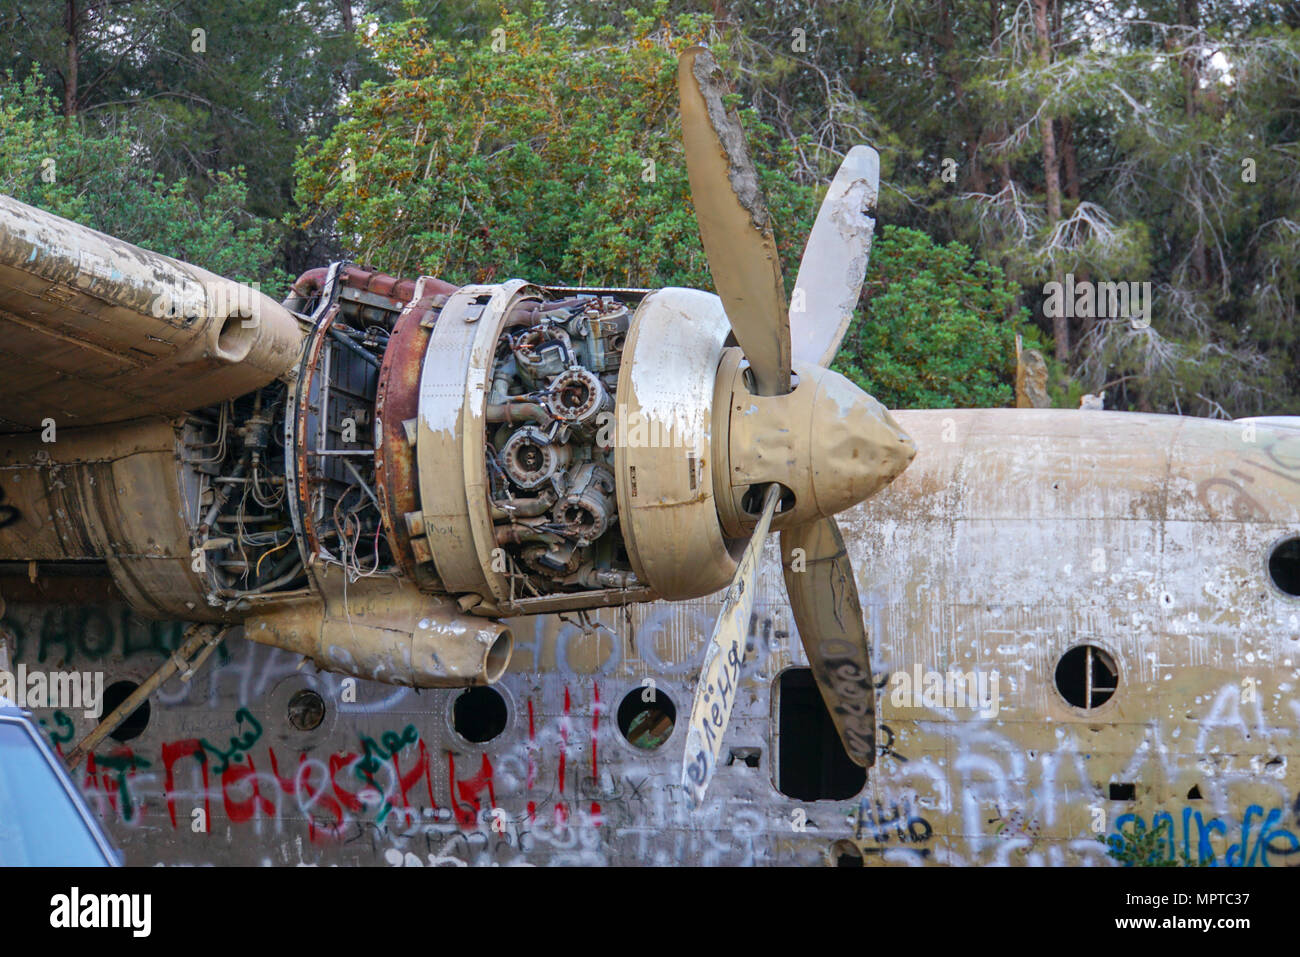 Israeli Air Force Nord N.2501D Noratlas at Defenders Park Nahshon Junction, Israel. It was set up as a memorial for the paratroopers unit 317. - Stock Image